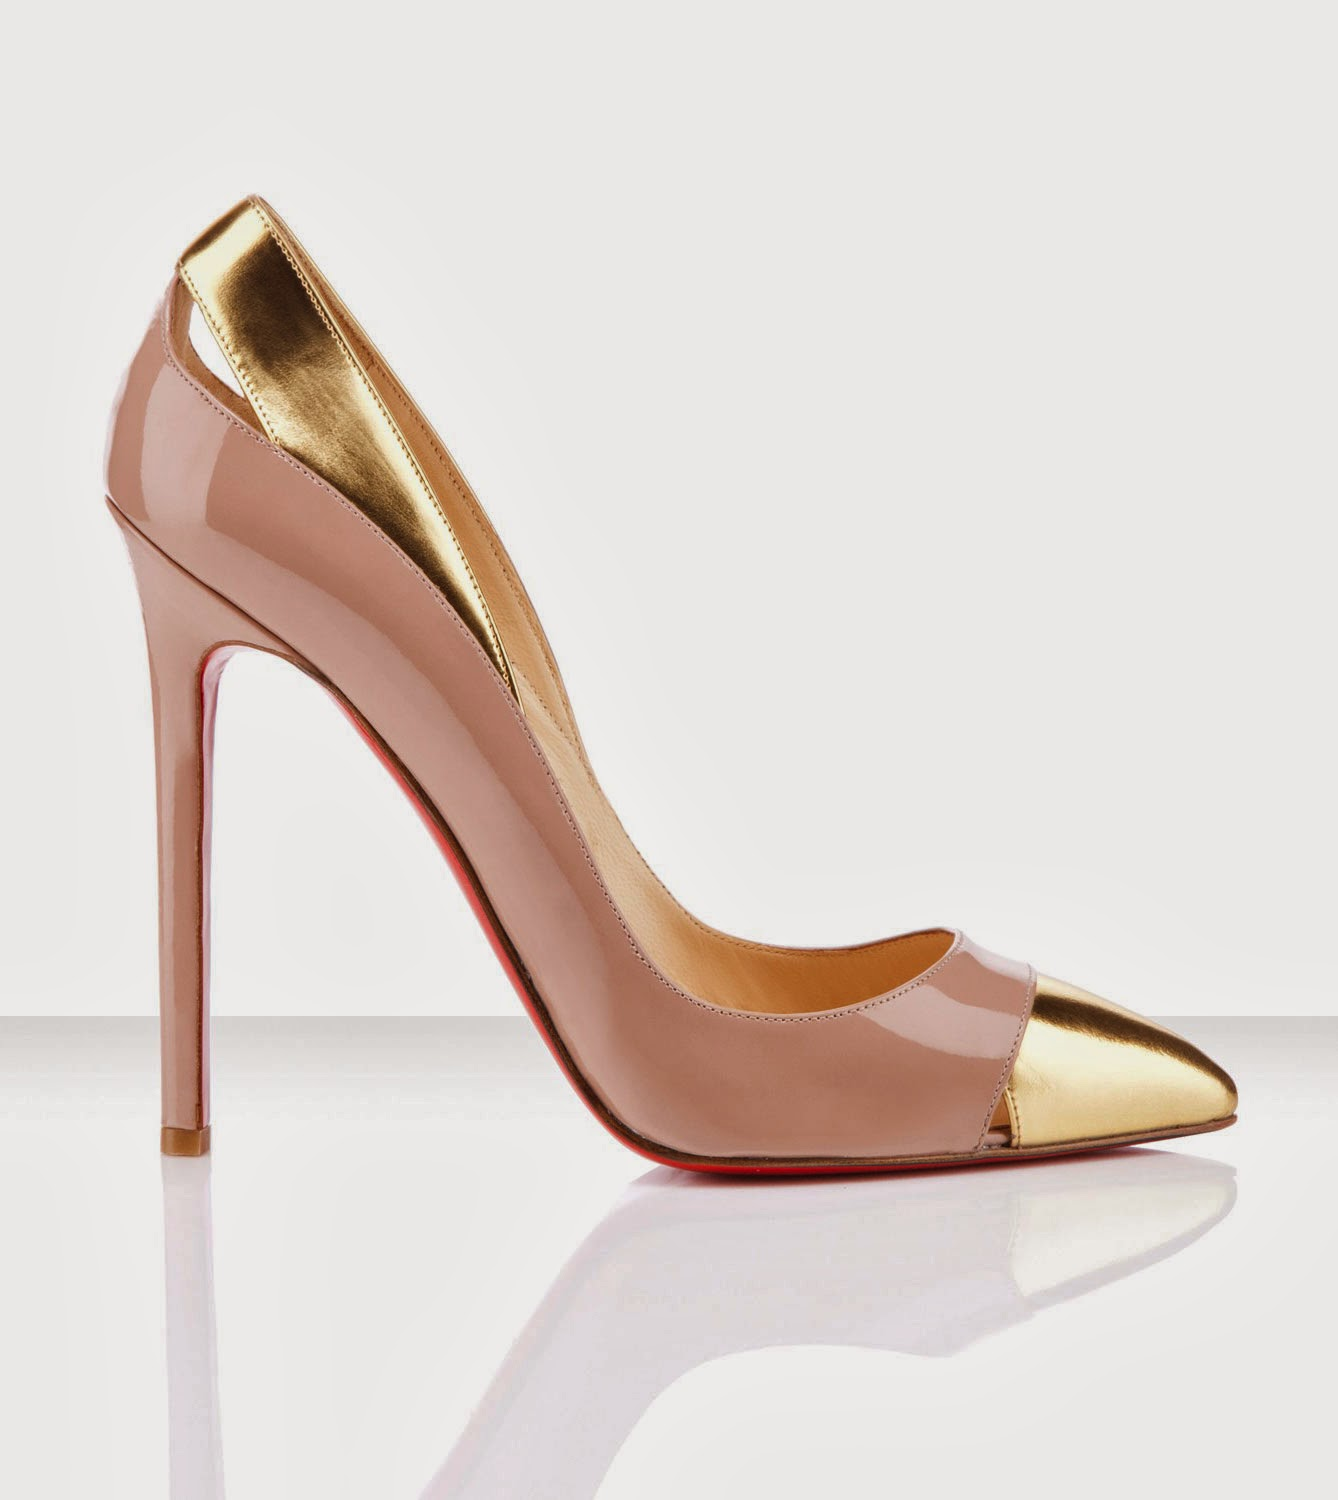 Gold Trim Light Pink High Heels Pointy Toe Shoes